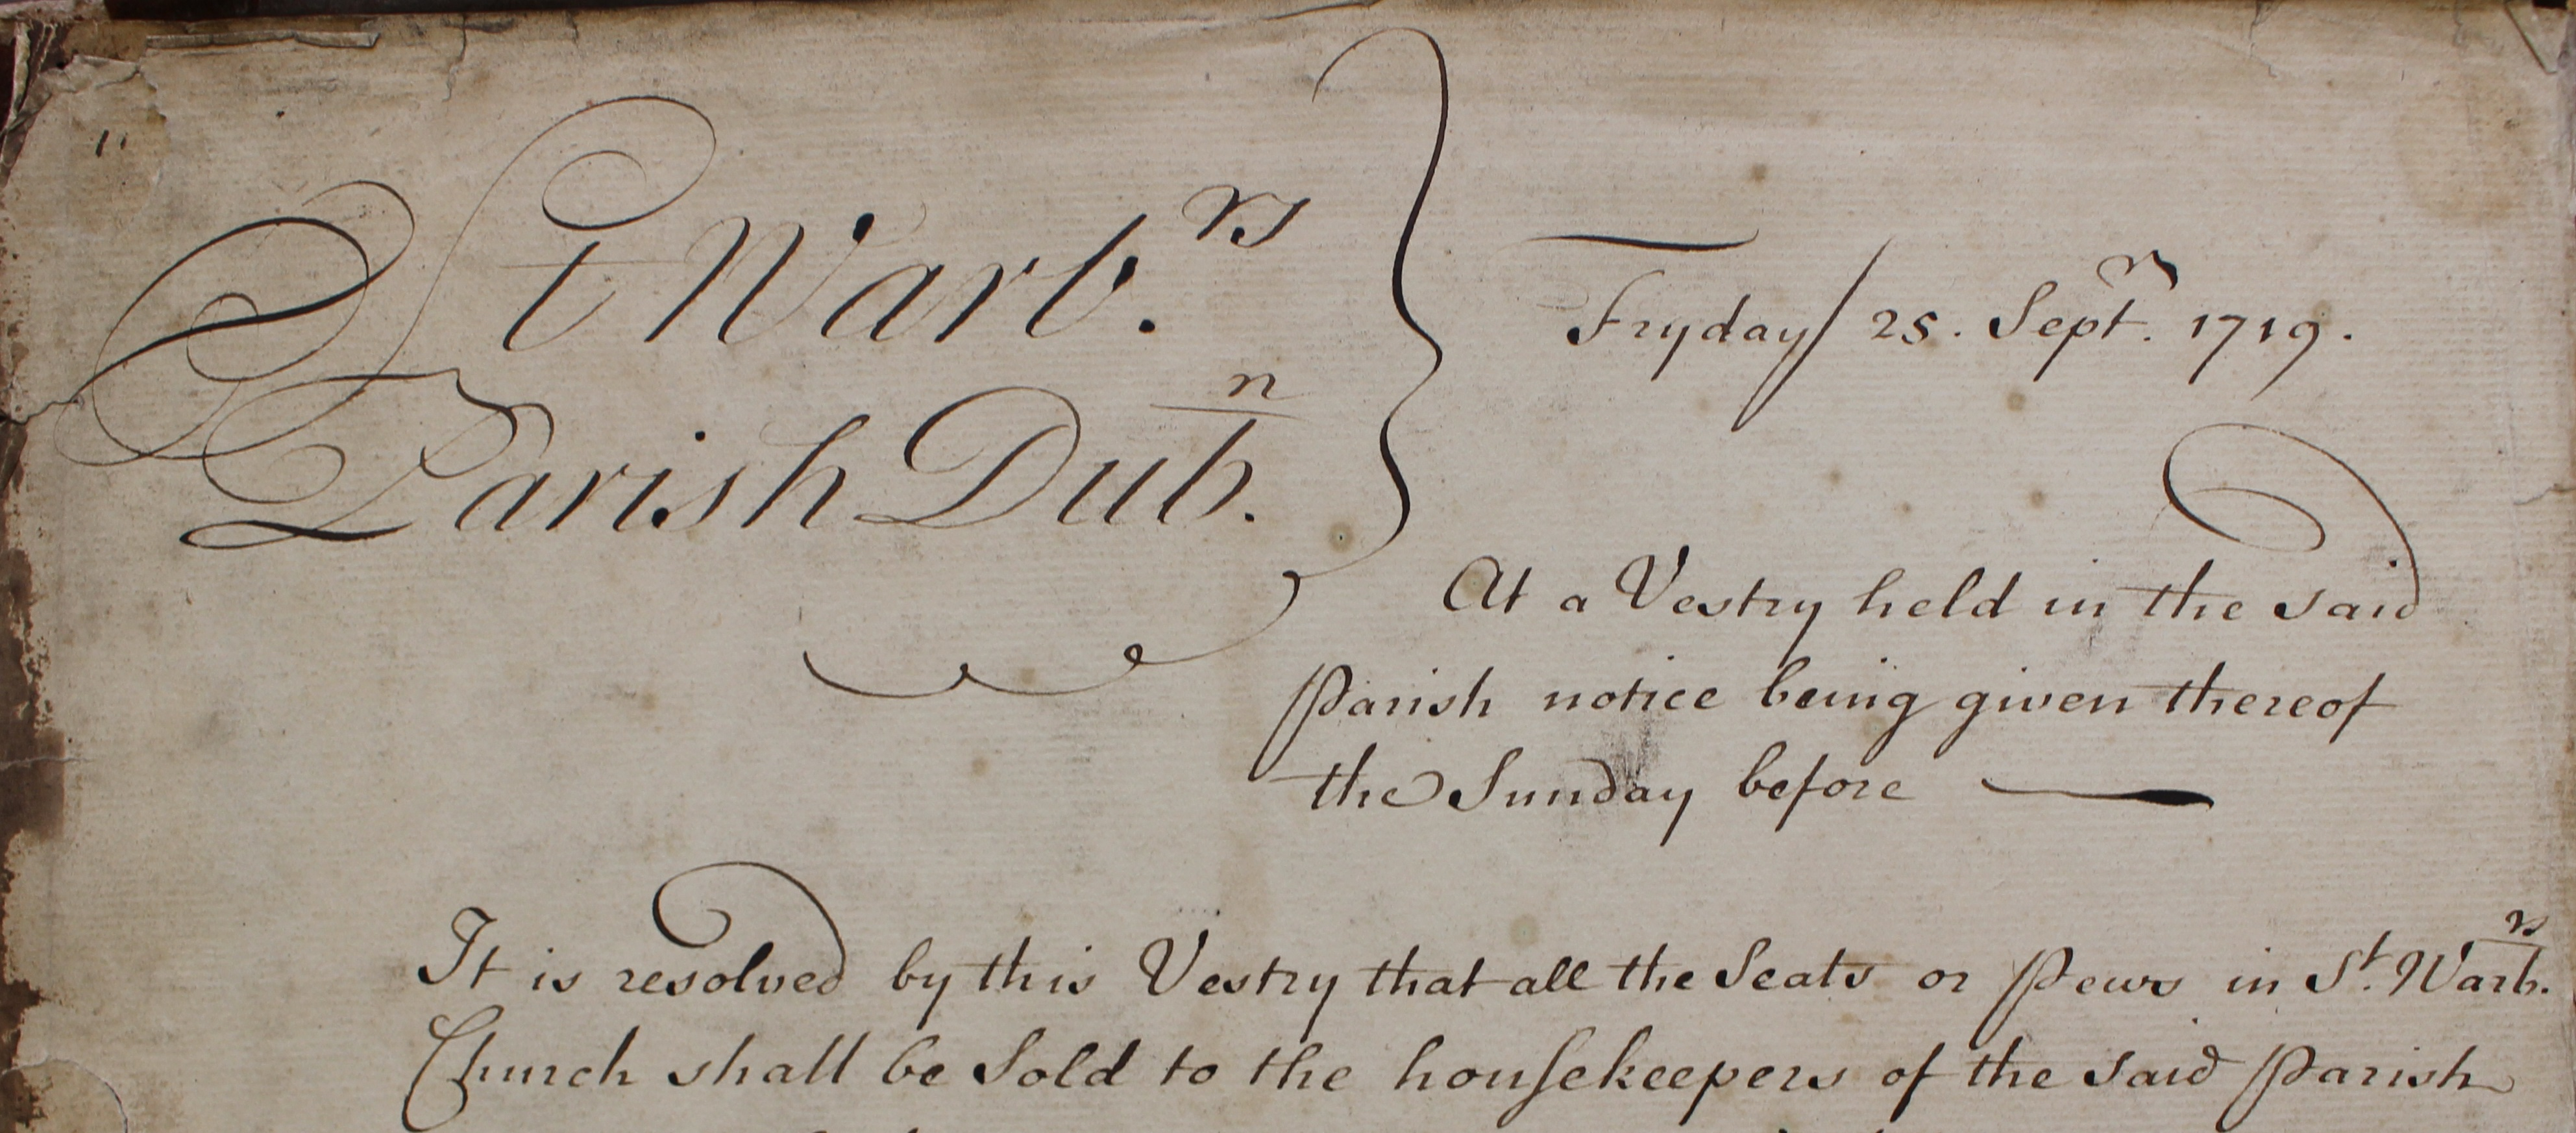 Opening entry in the St Werburgh's parish, Dublin, pew register, commencing on 25th September 1719; RCB Library P326.28.3